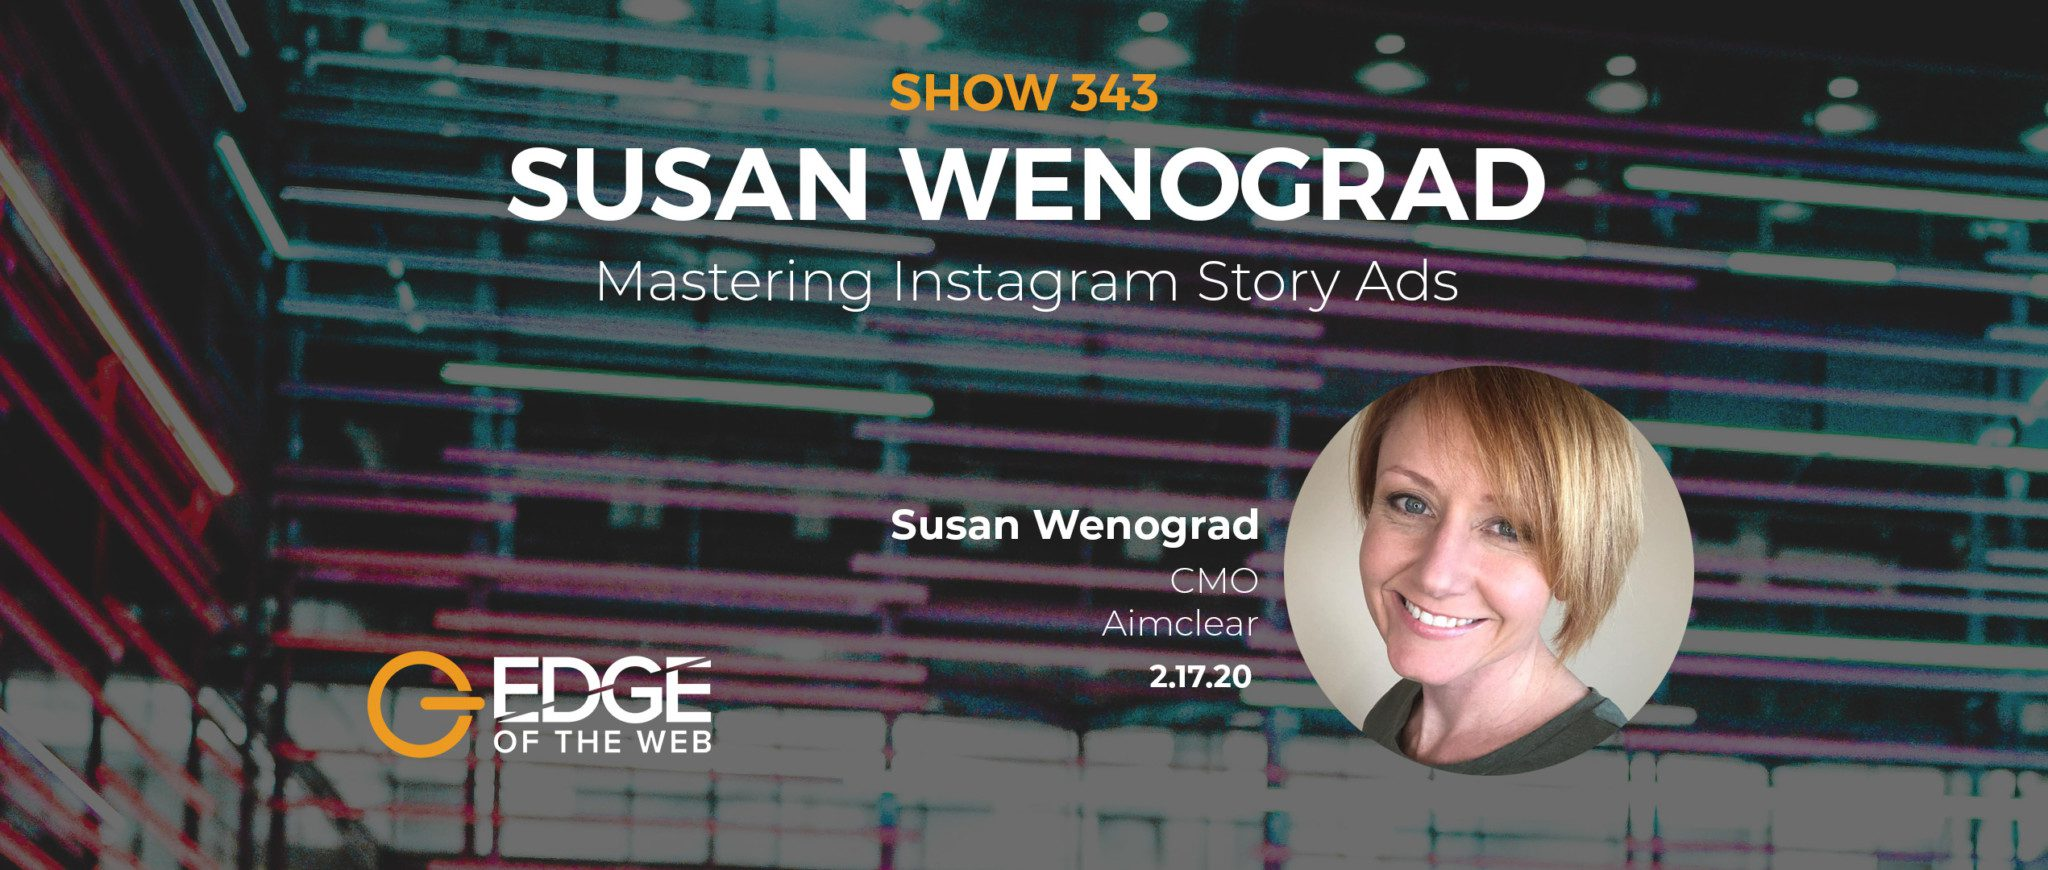 Show 343: Mastering Instagram Story Ads, featuring Susan Wenograd